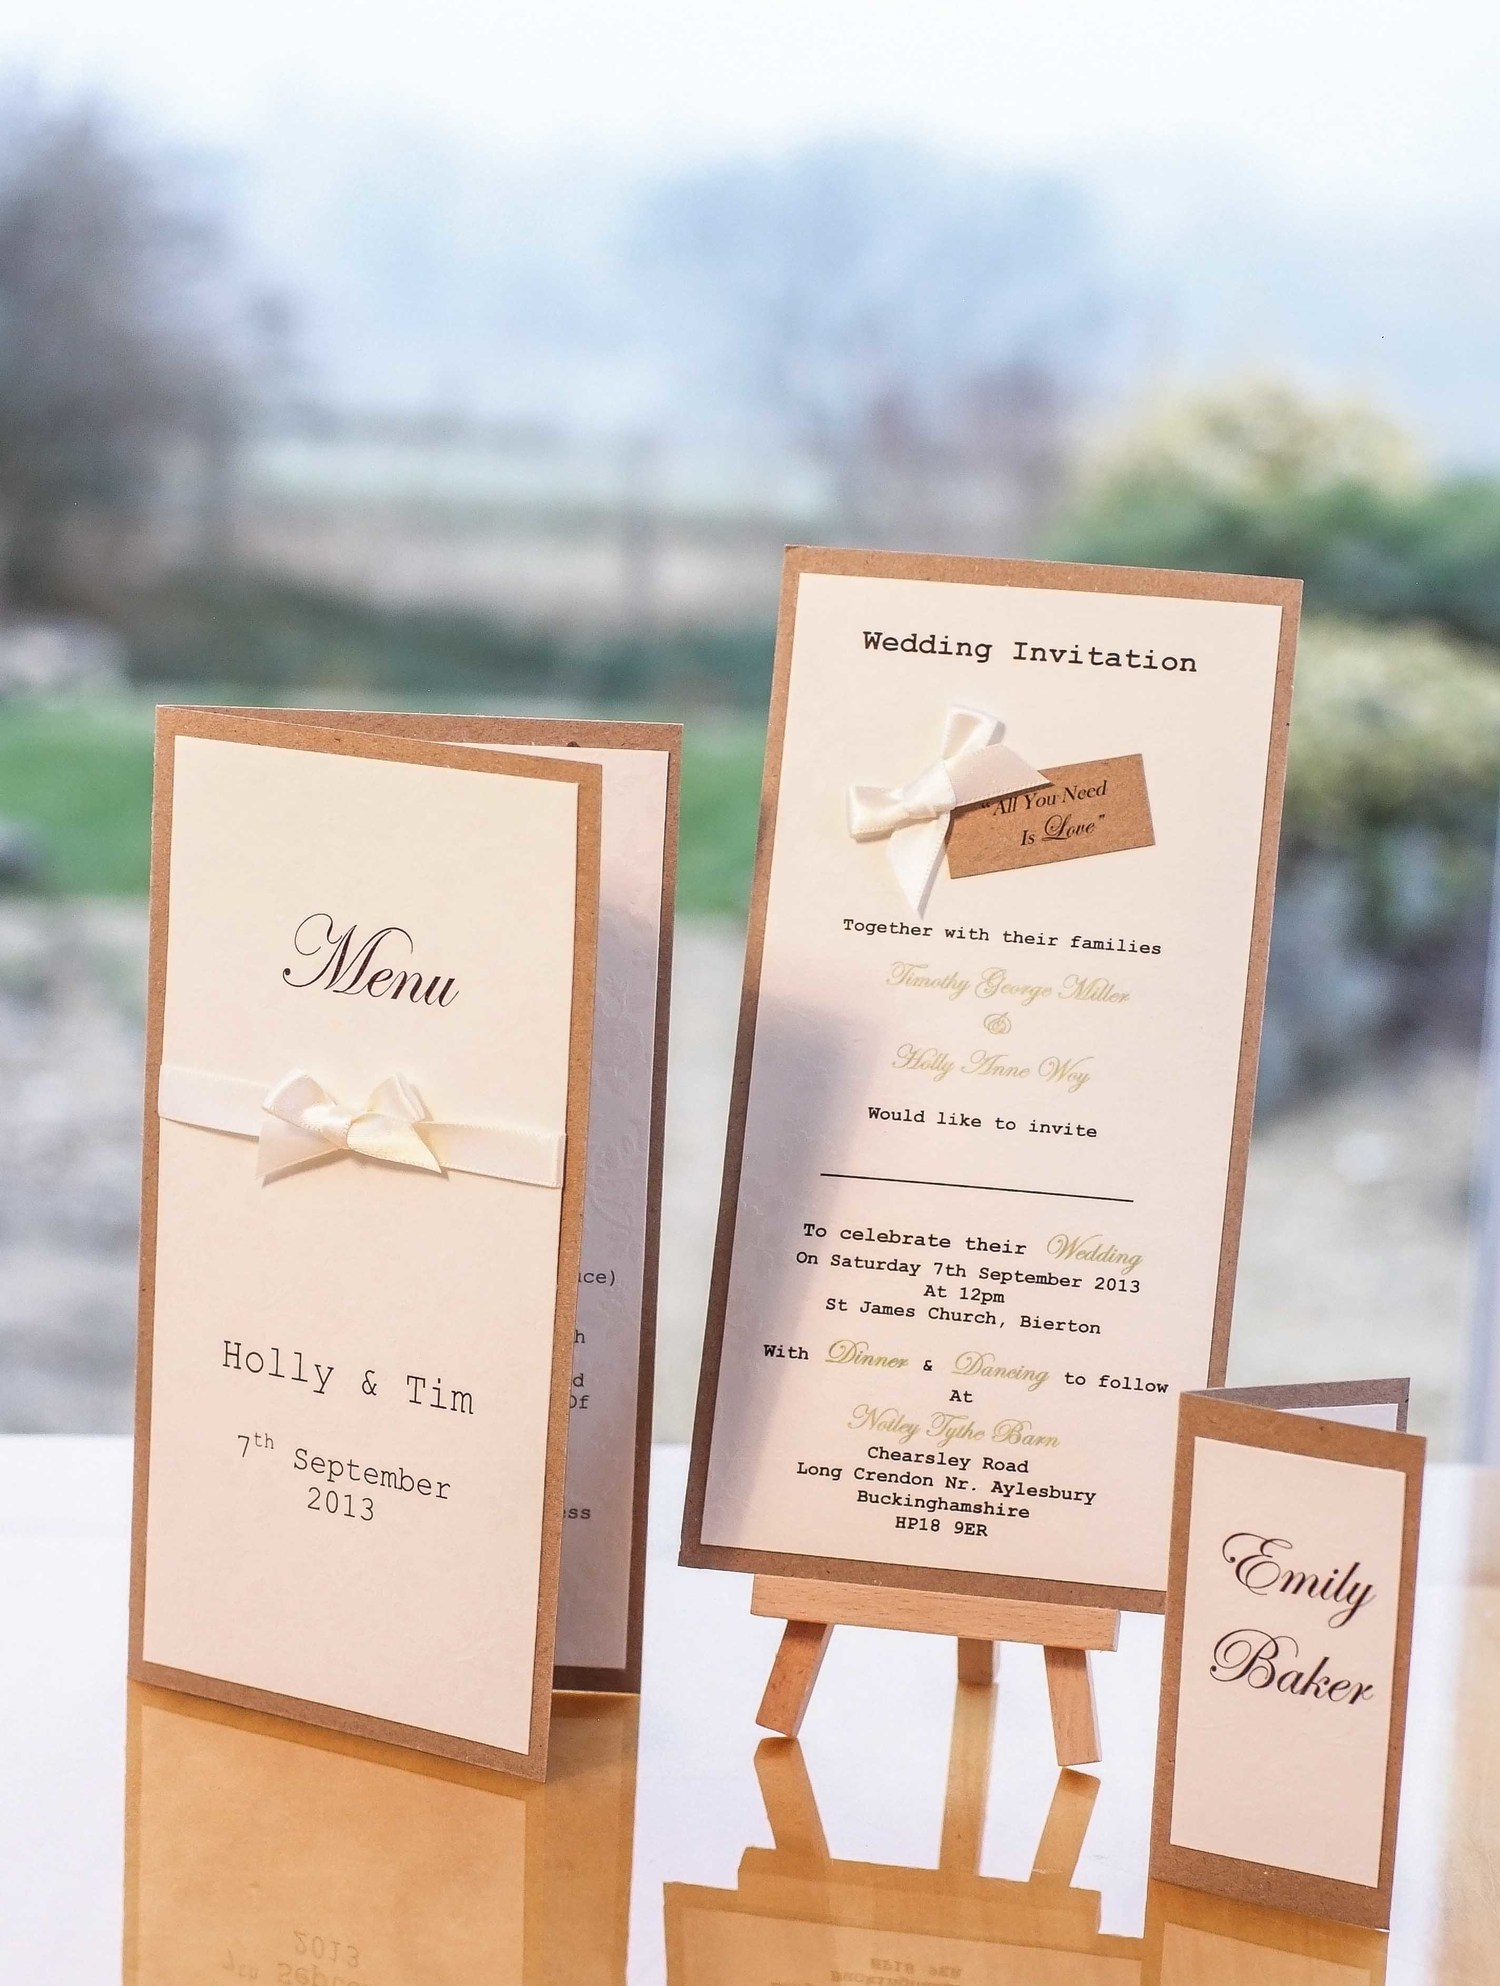 All you need is love designer wedding invitation collection from wedding invitations monicamarmolfo Image collections